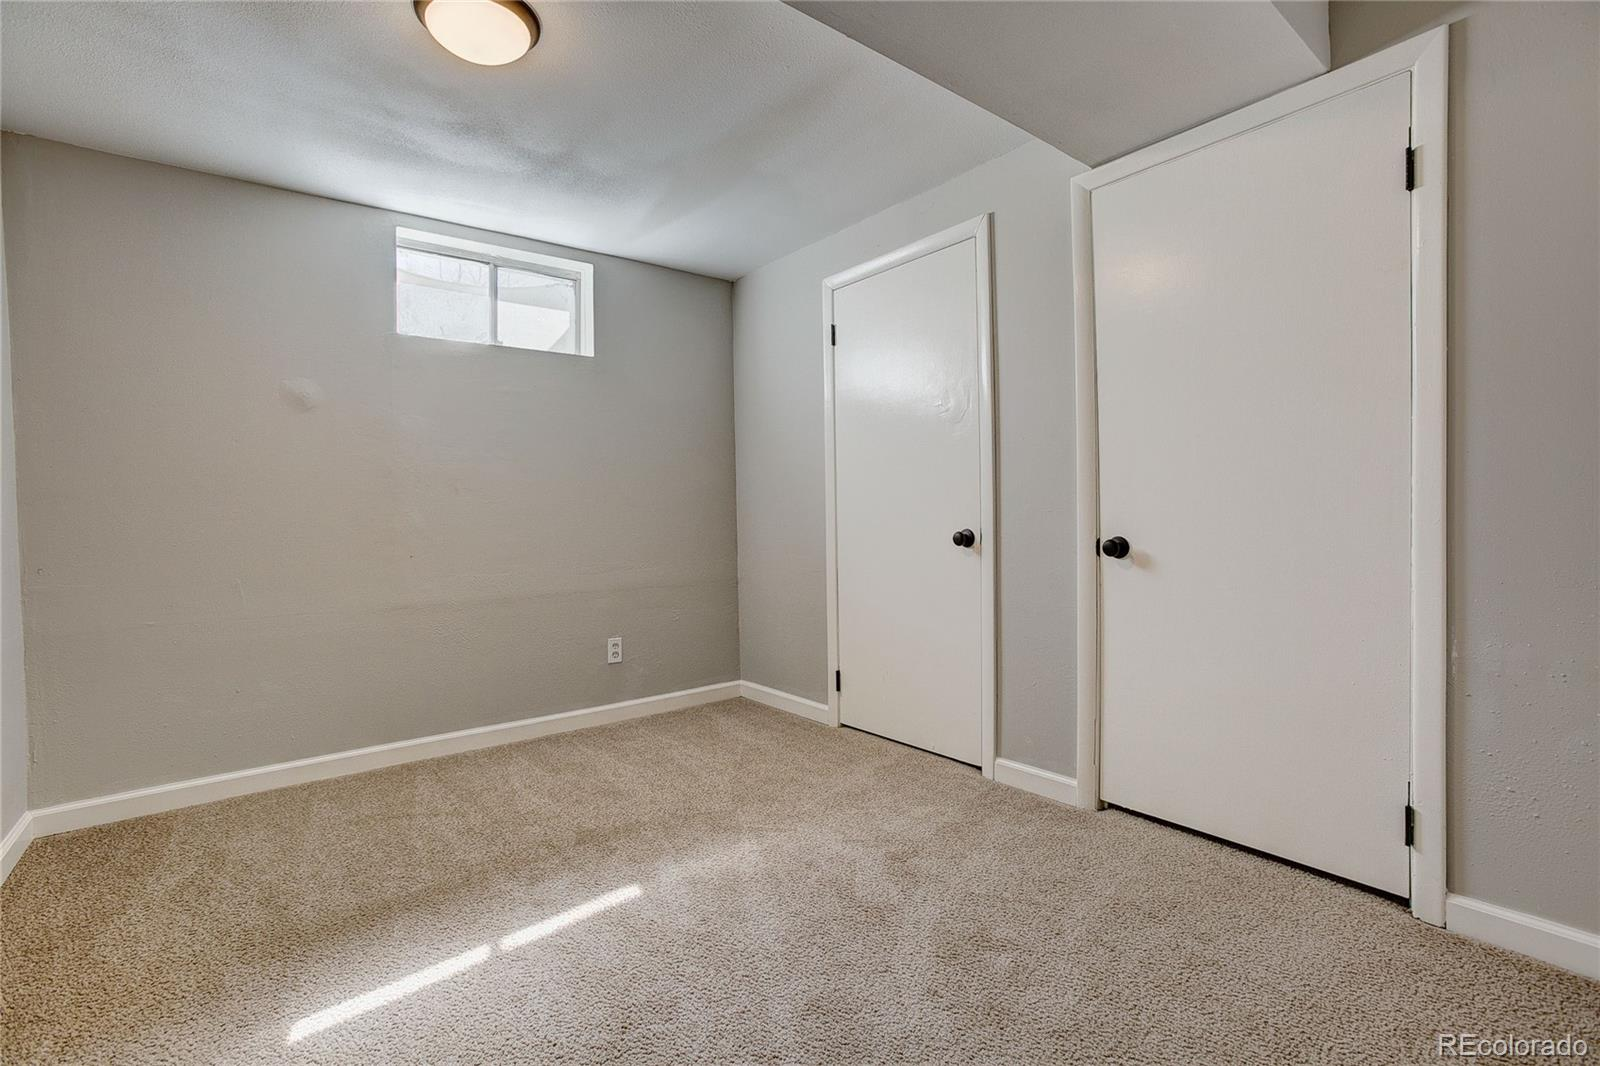 MLS# 9710462 - 29 - 1250 W 7th Ave Dr, Broomfield, CO 80020